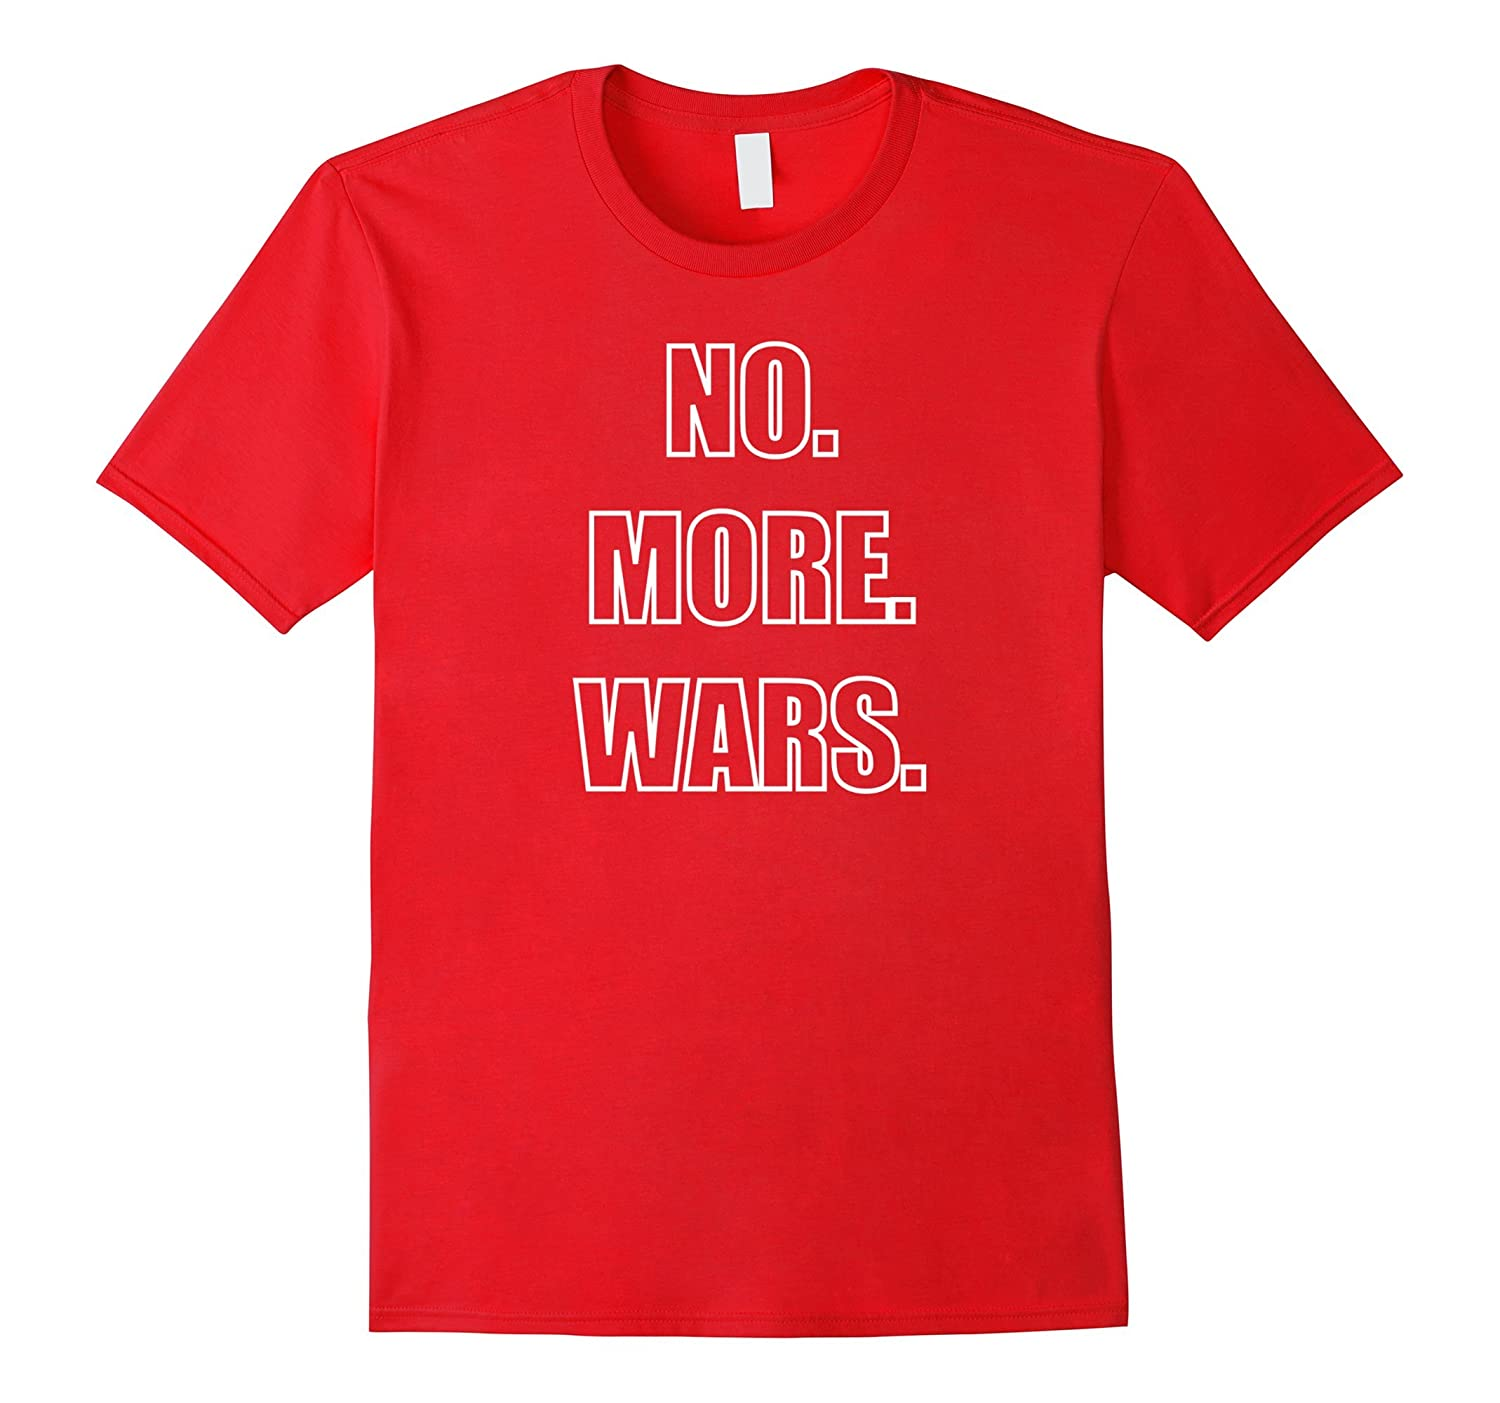 Political Anti-War T-Shirt Simple No More Wars-Vaci